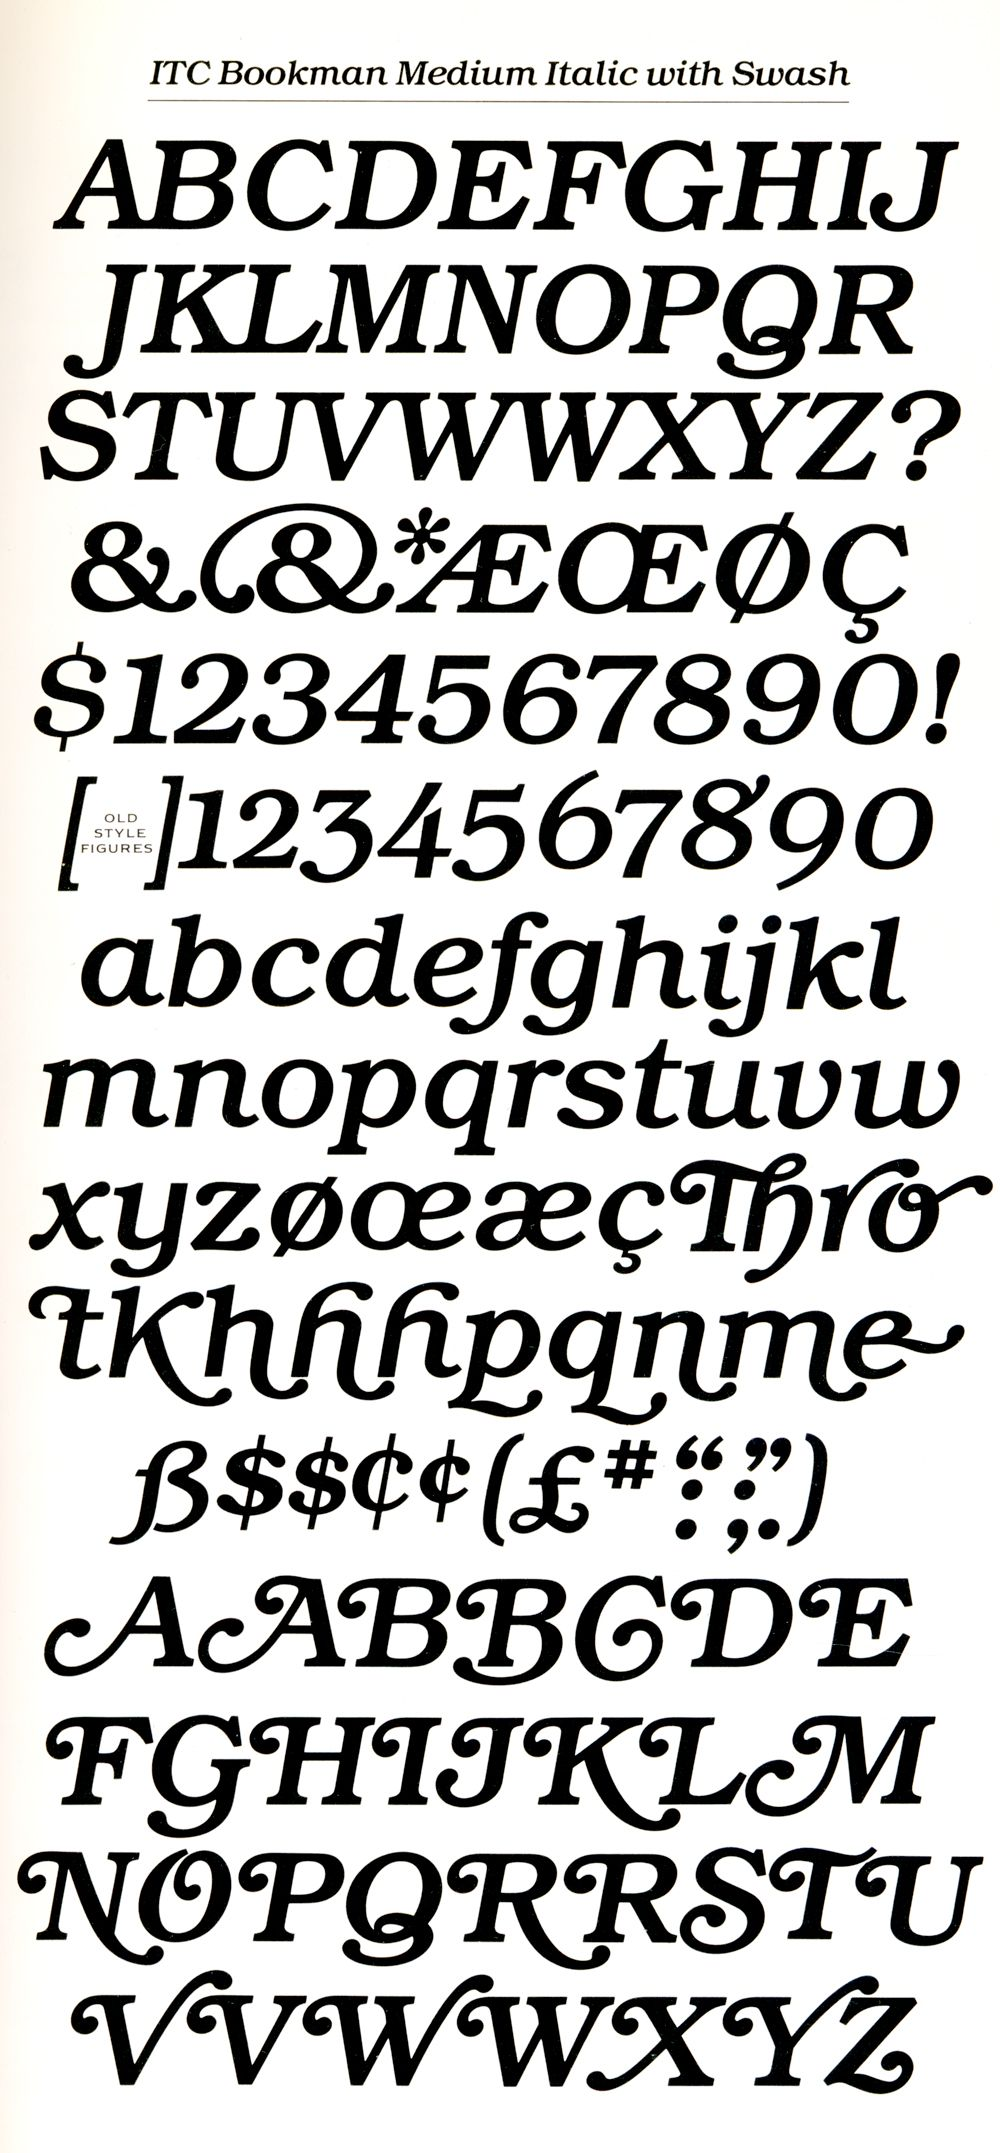 Bookman Swash Italic This Font Dominated My Very Early Childhood